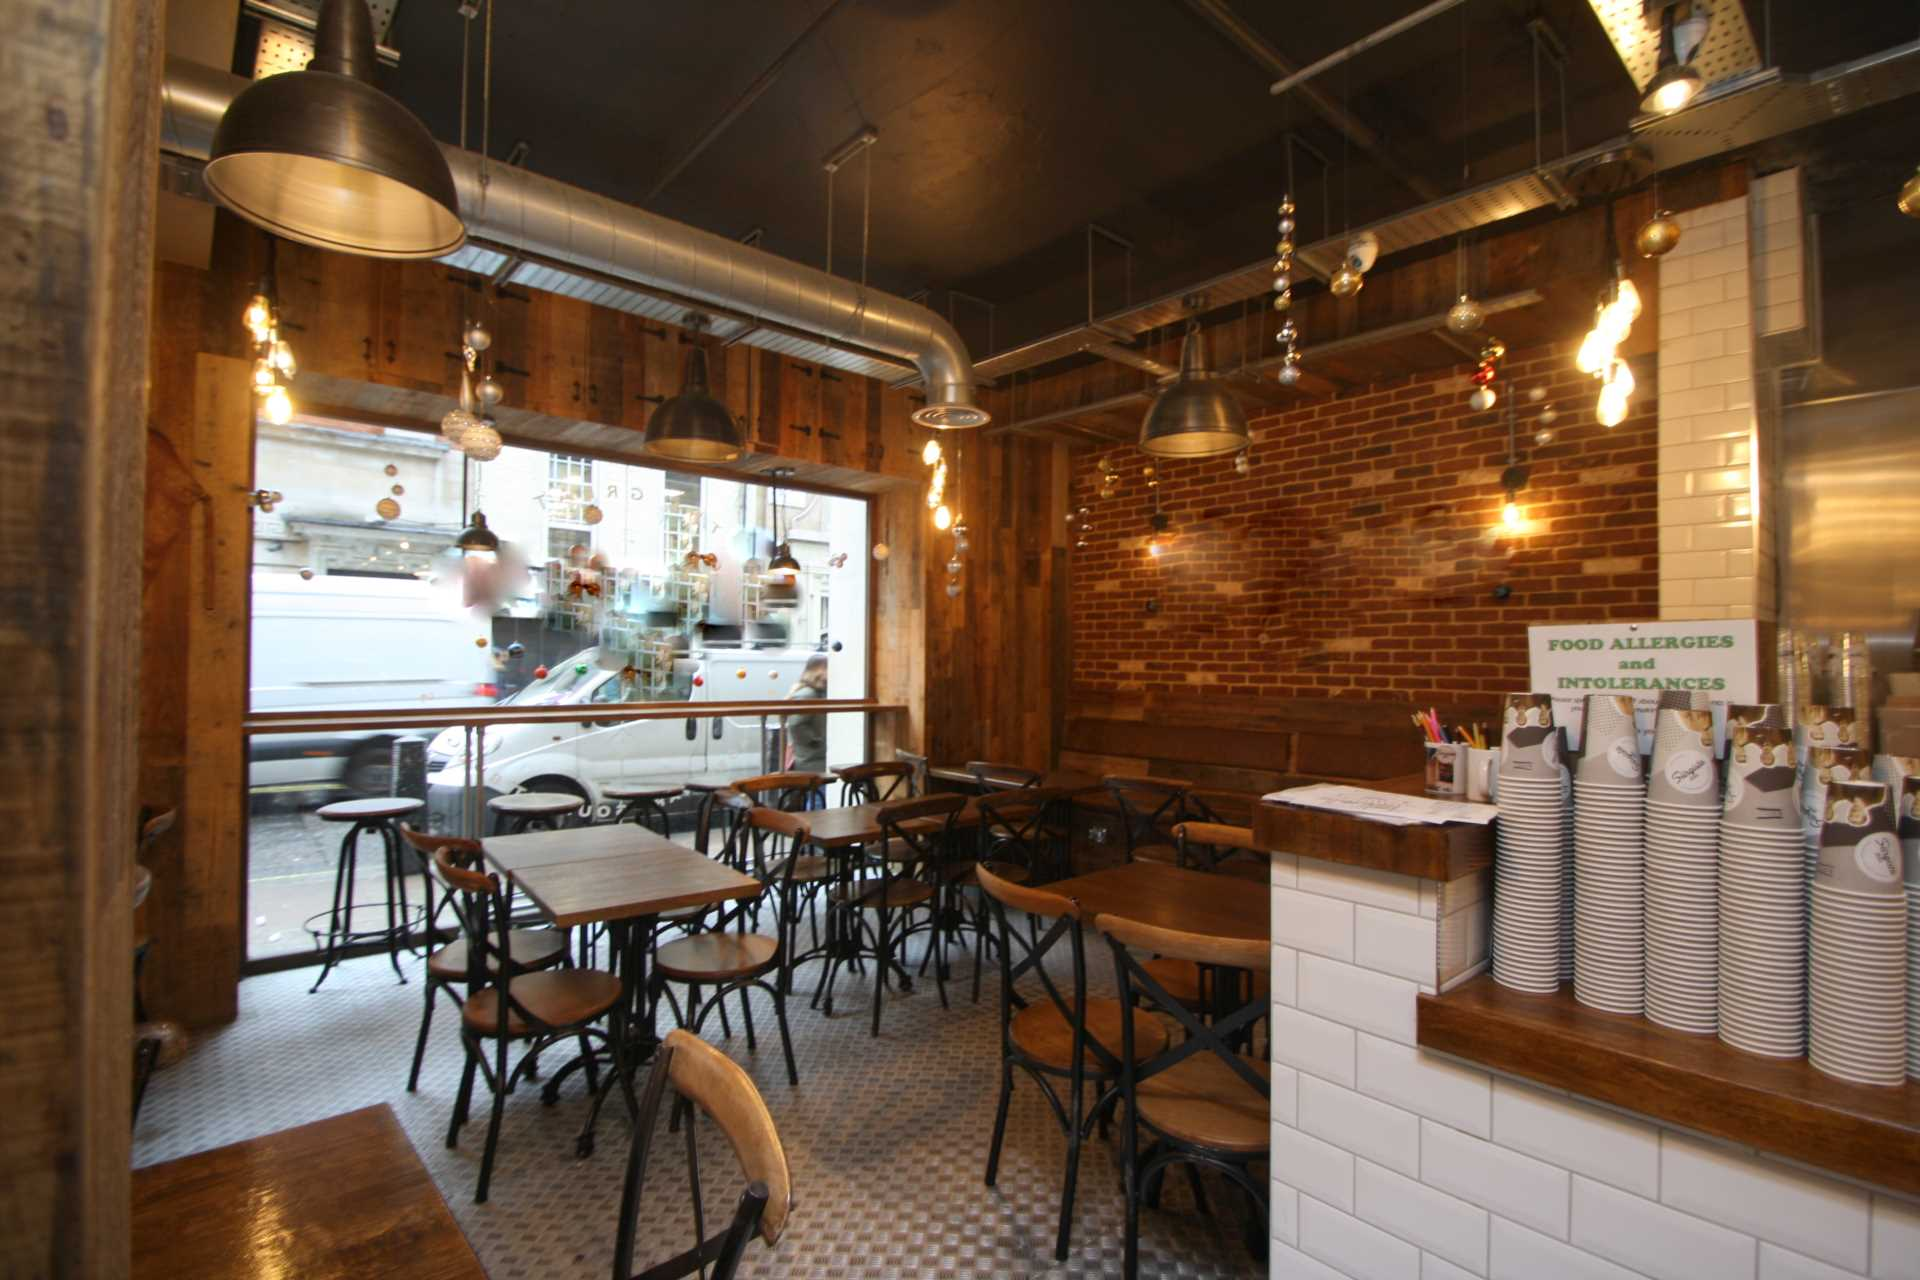 Commercial Property To Rent In Piccadilly L2L92-12474